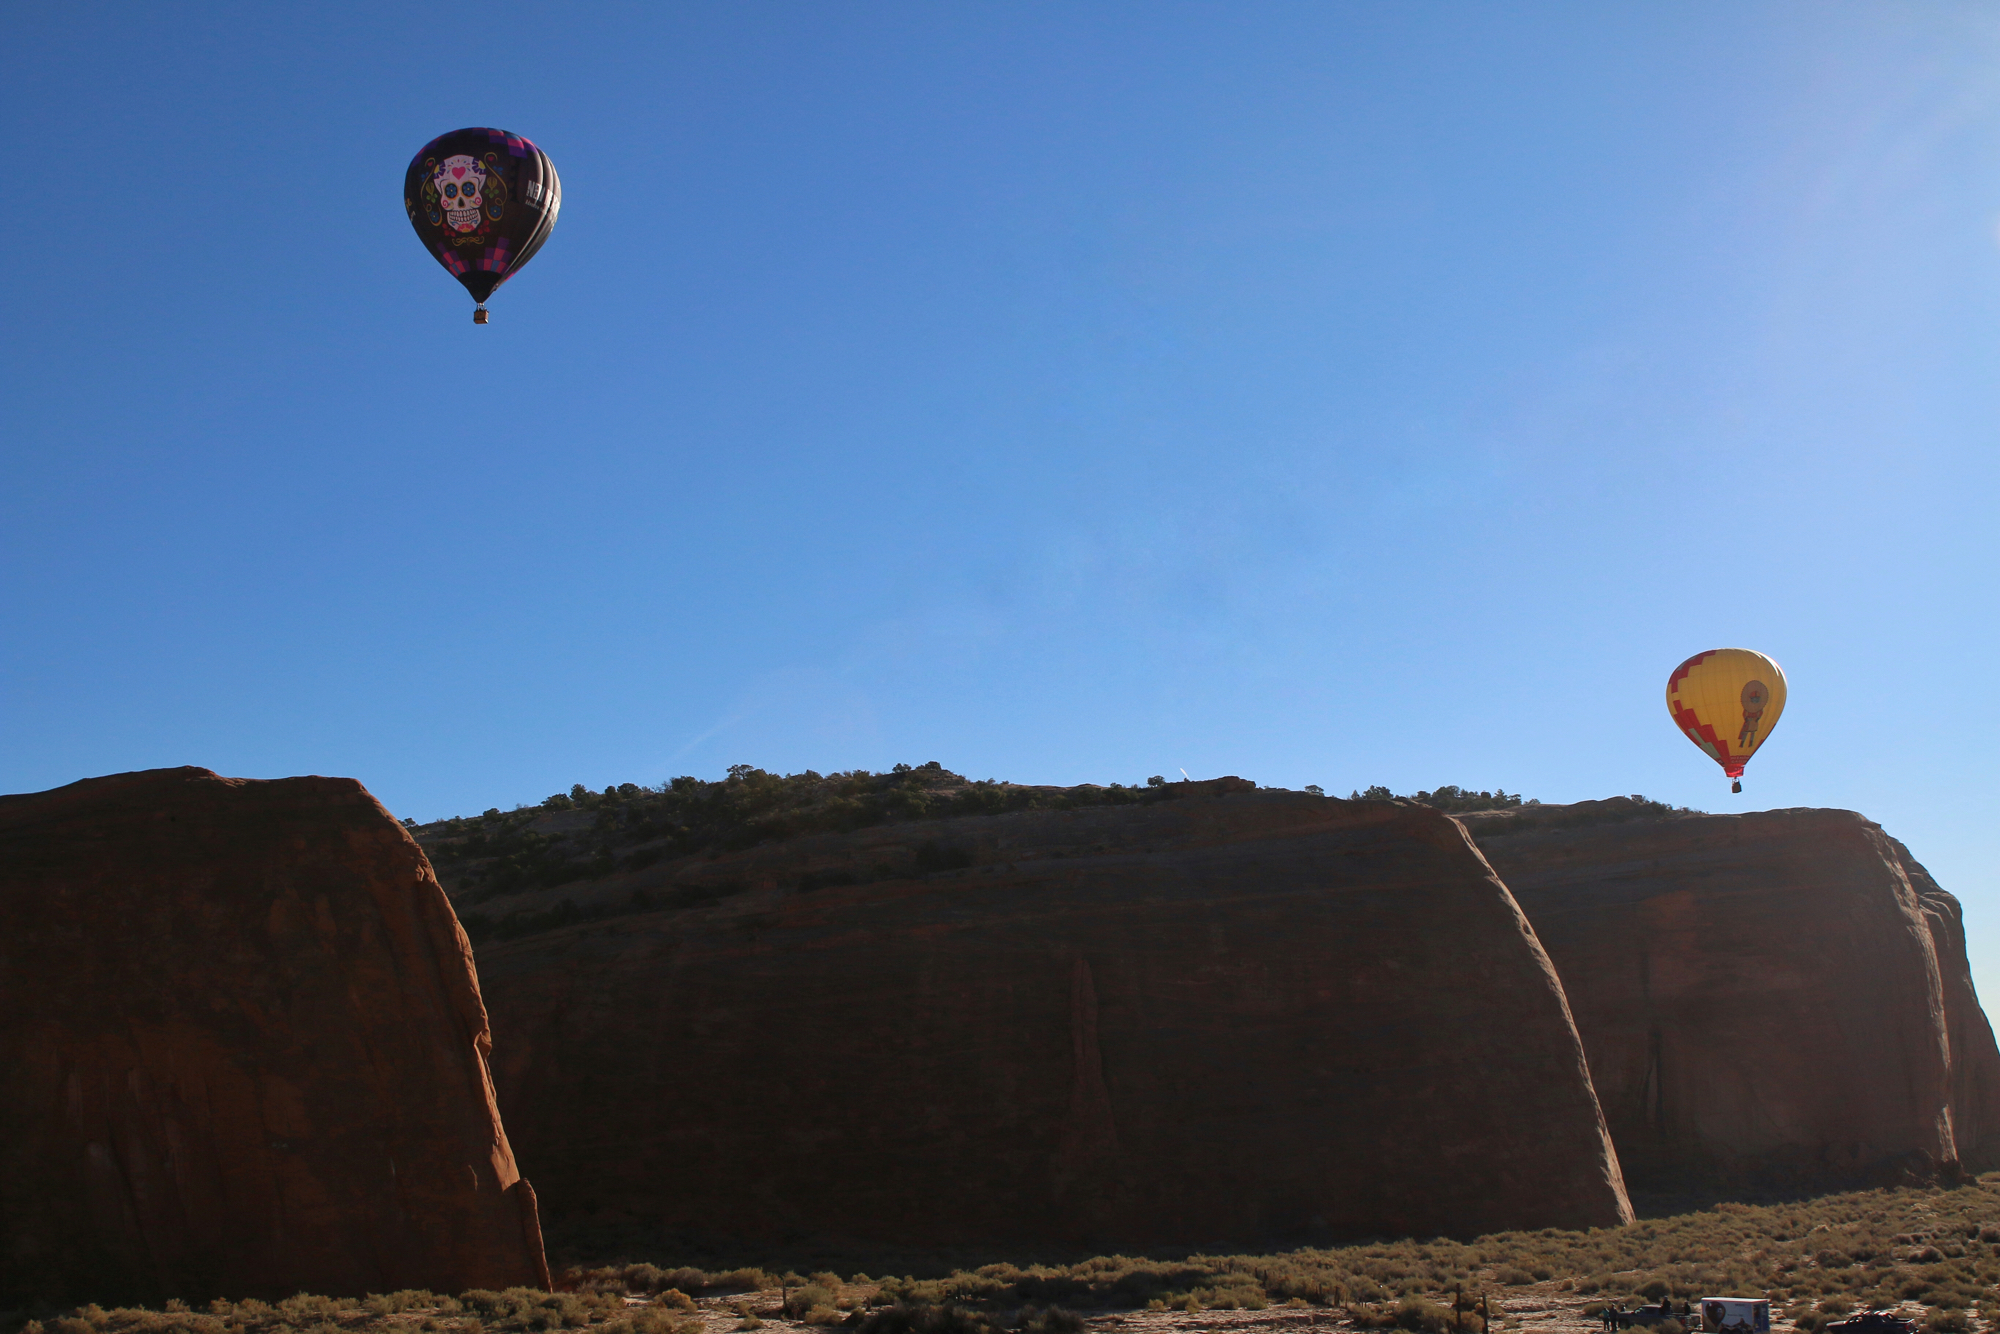 view of other hot air balloons in flight over red rocks